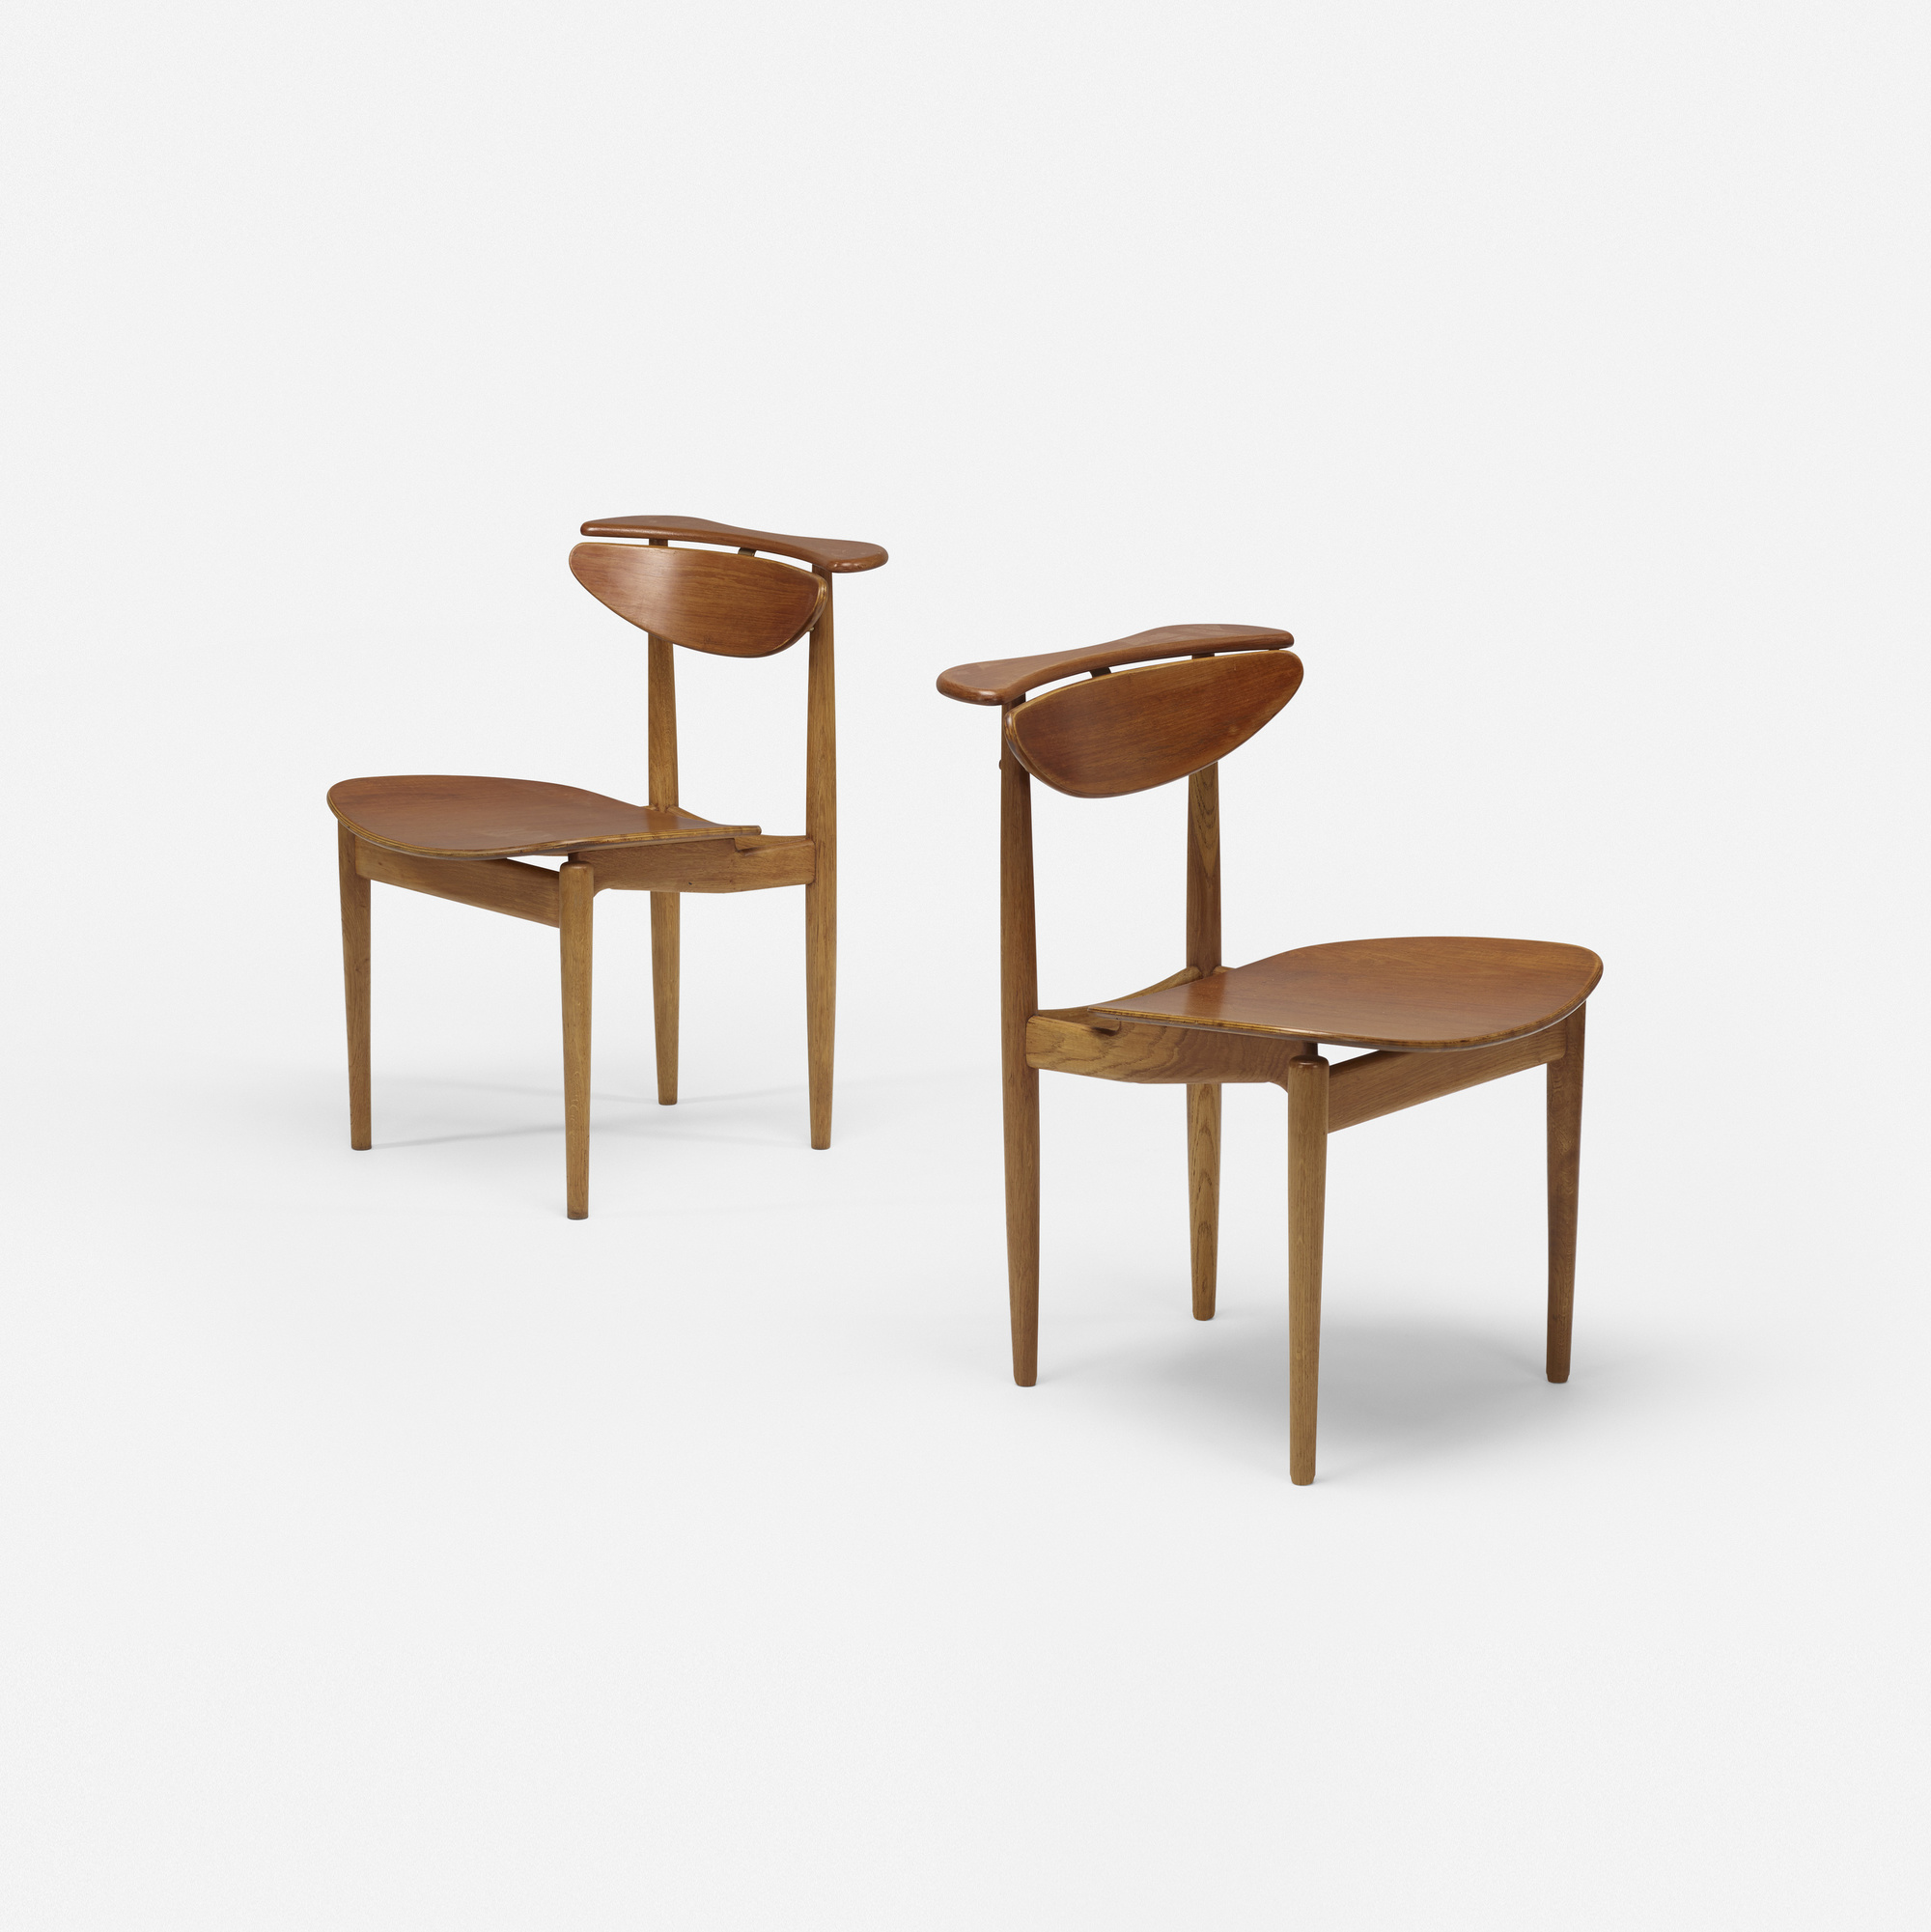 115: Finn Juhl / dining chairs, pair (2 of 4)